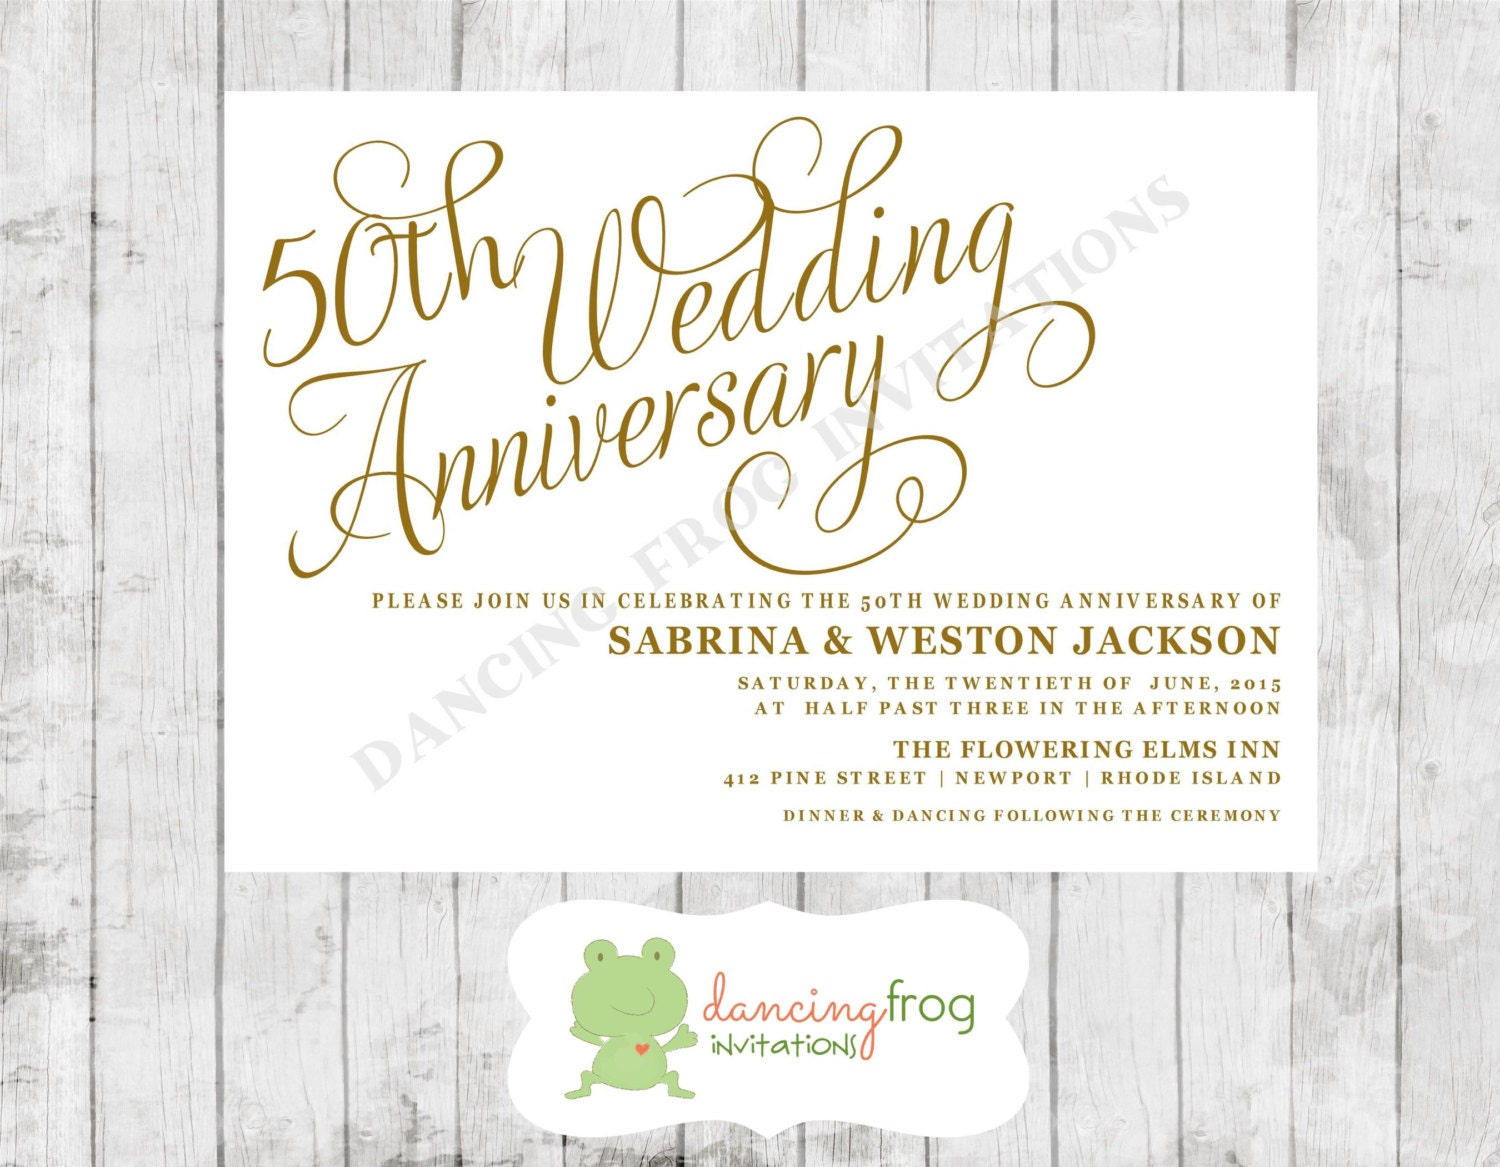 Frog Wedding Invitations: 50th Wedding Anniversary Invitation Printed By